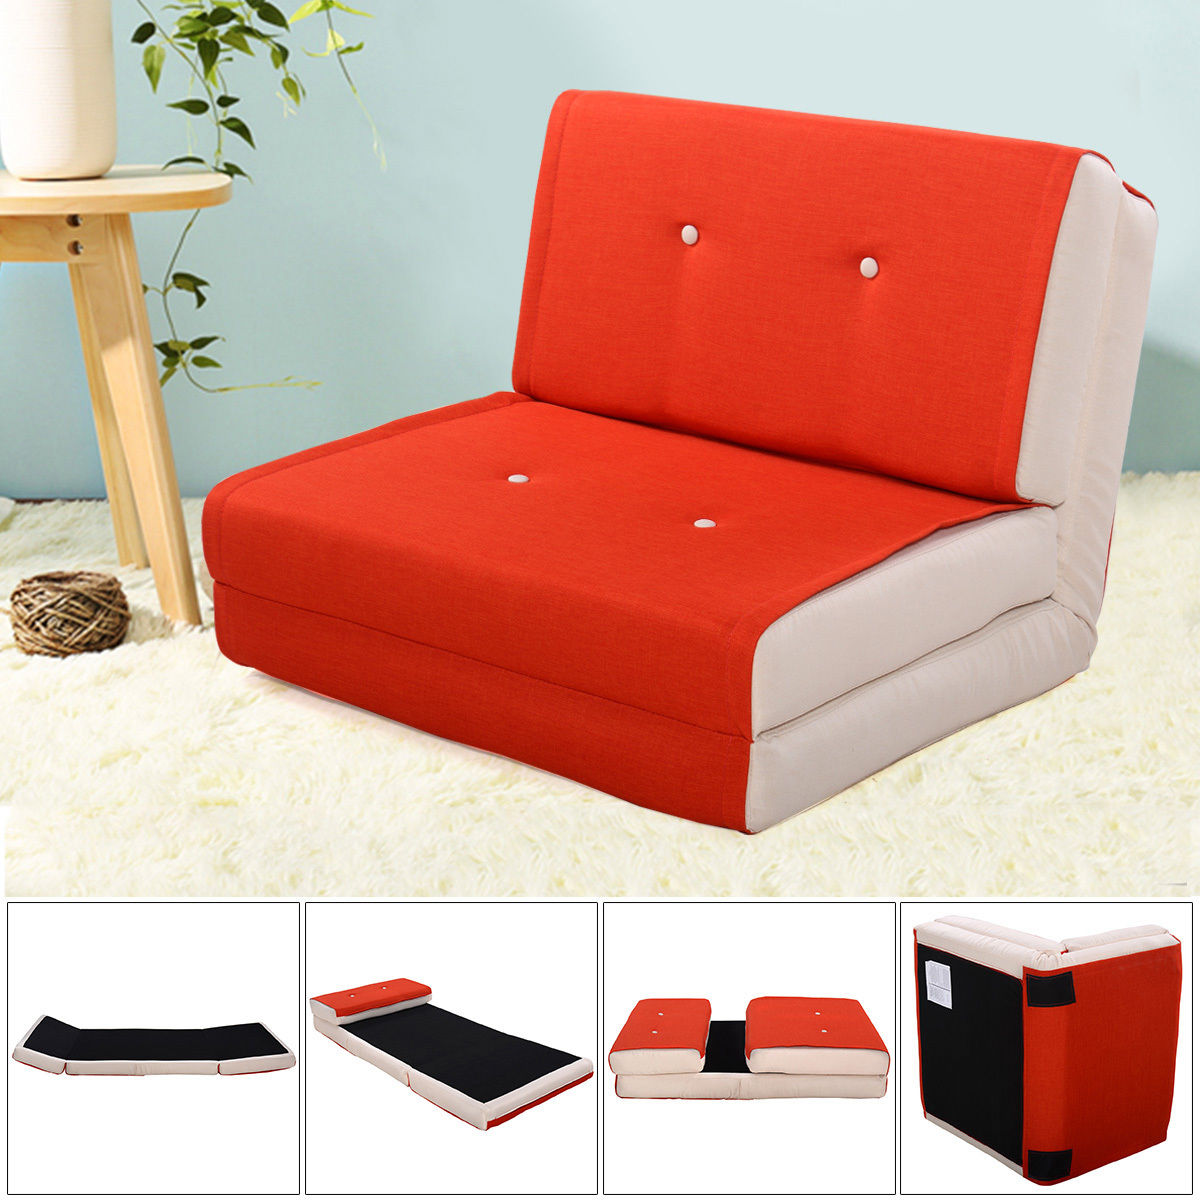 flip chair walmart brown office chairs costway fold down out lounger convertible sleeper bed couch game dorm orange ...